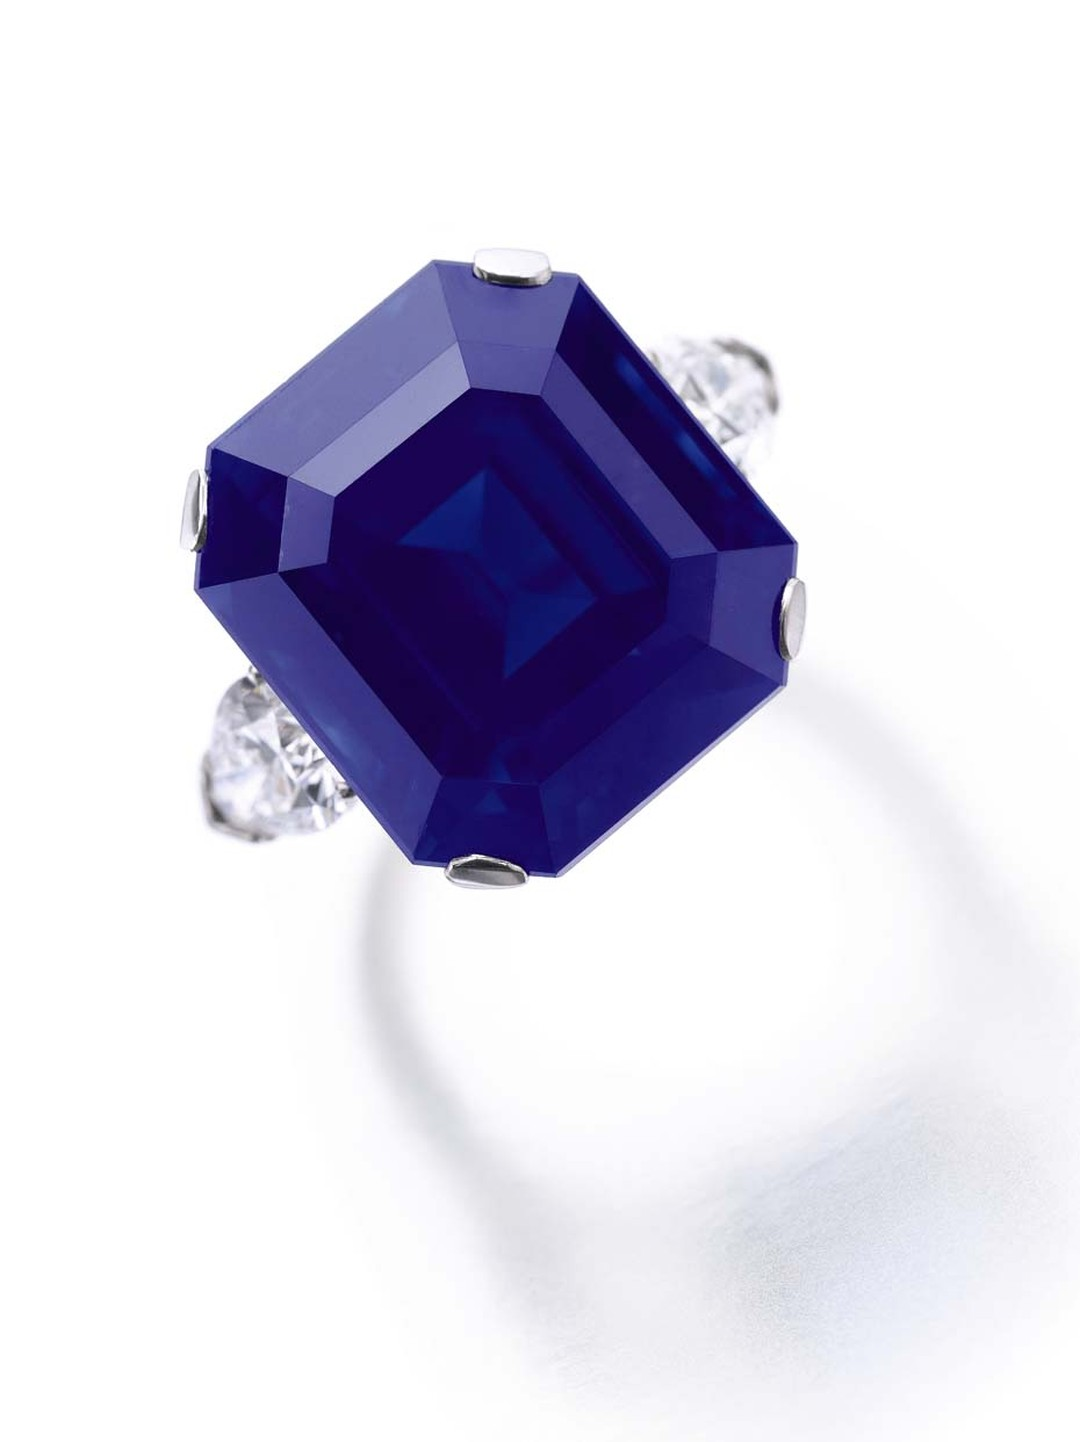 The 27.54ct sapphire from Kashmir in this ring belonging to Greek financier Dimitri Mavrommatis combines a deep velvety blue colour with a very high purity. It will go on sale at Sotheby's Geneva this November (estimate: US$3-6 million).